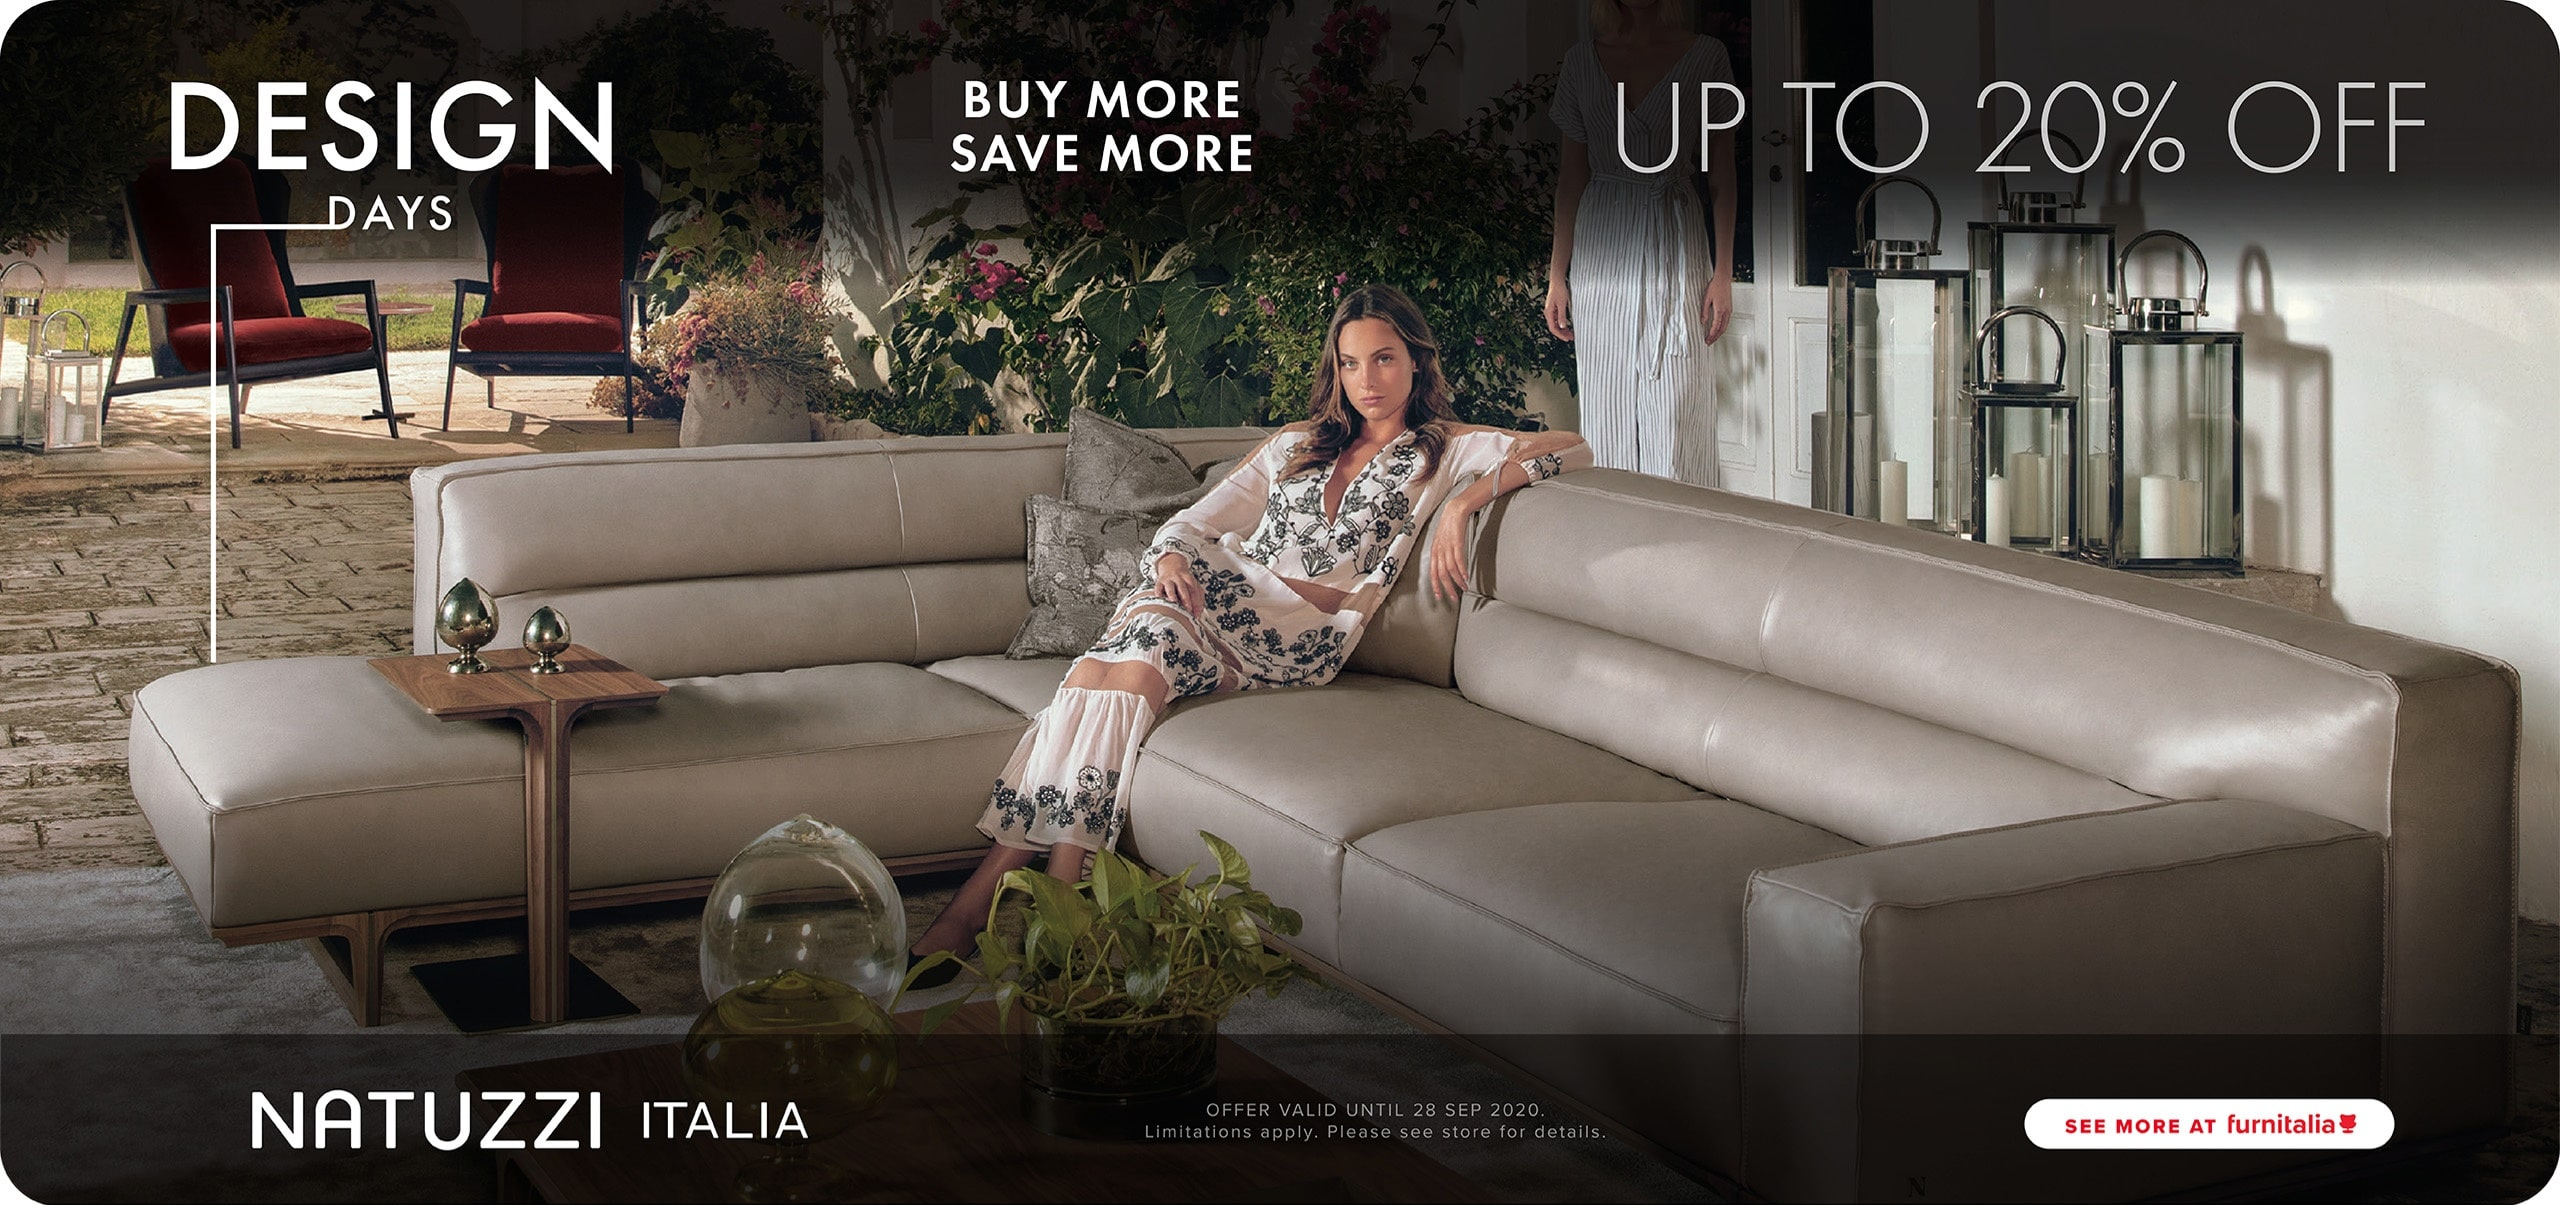 Enjoy your modern contemporary home furniture like this sofa from Natuzzi Italia.